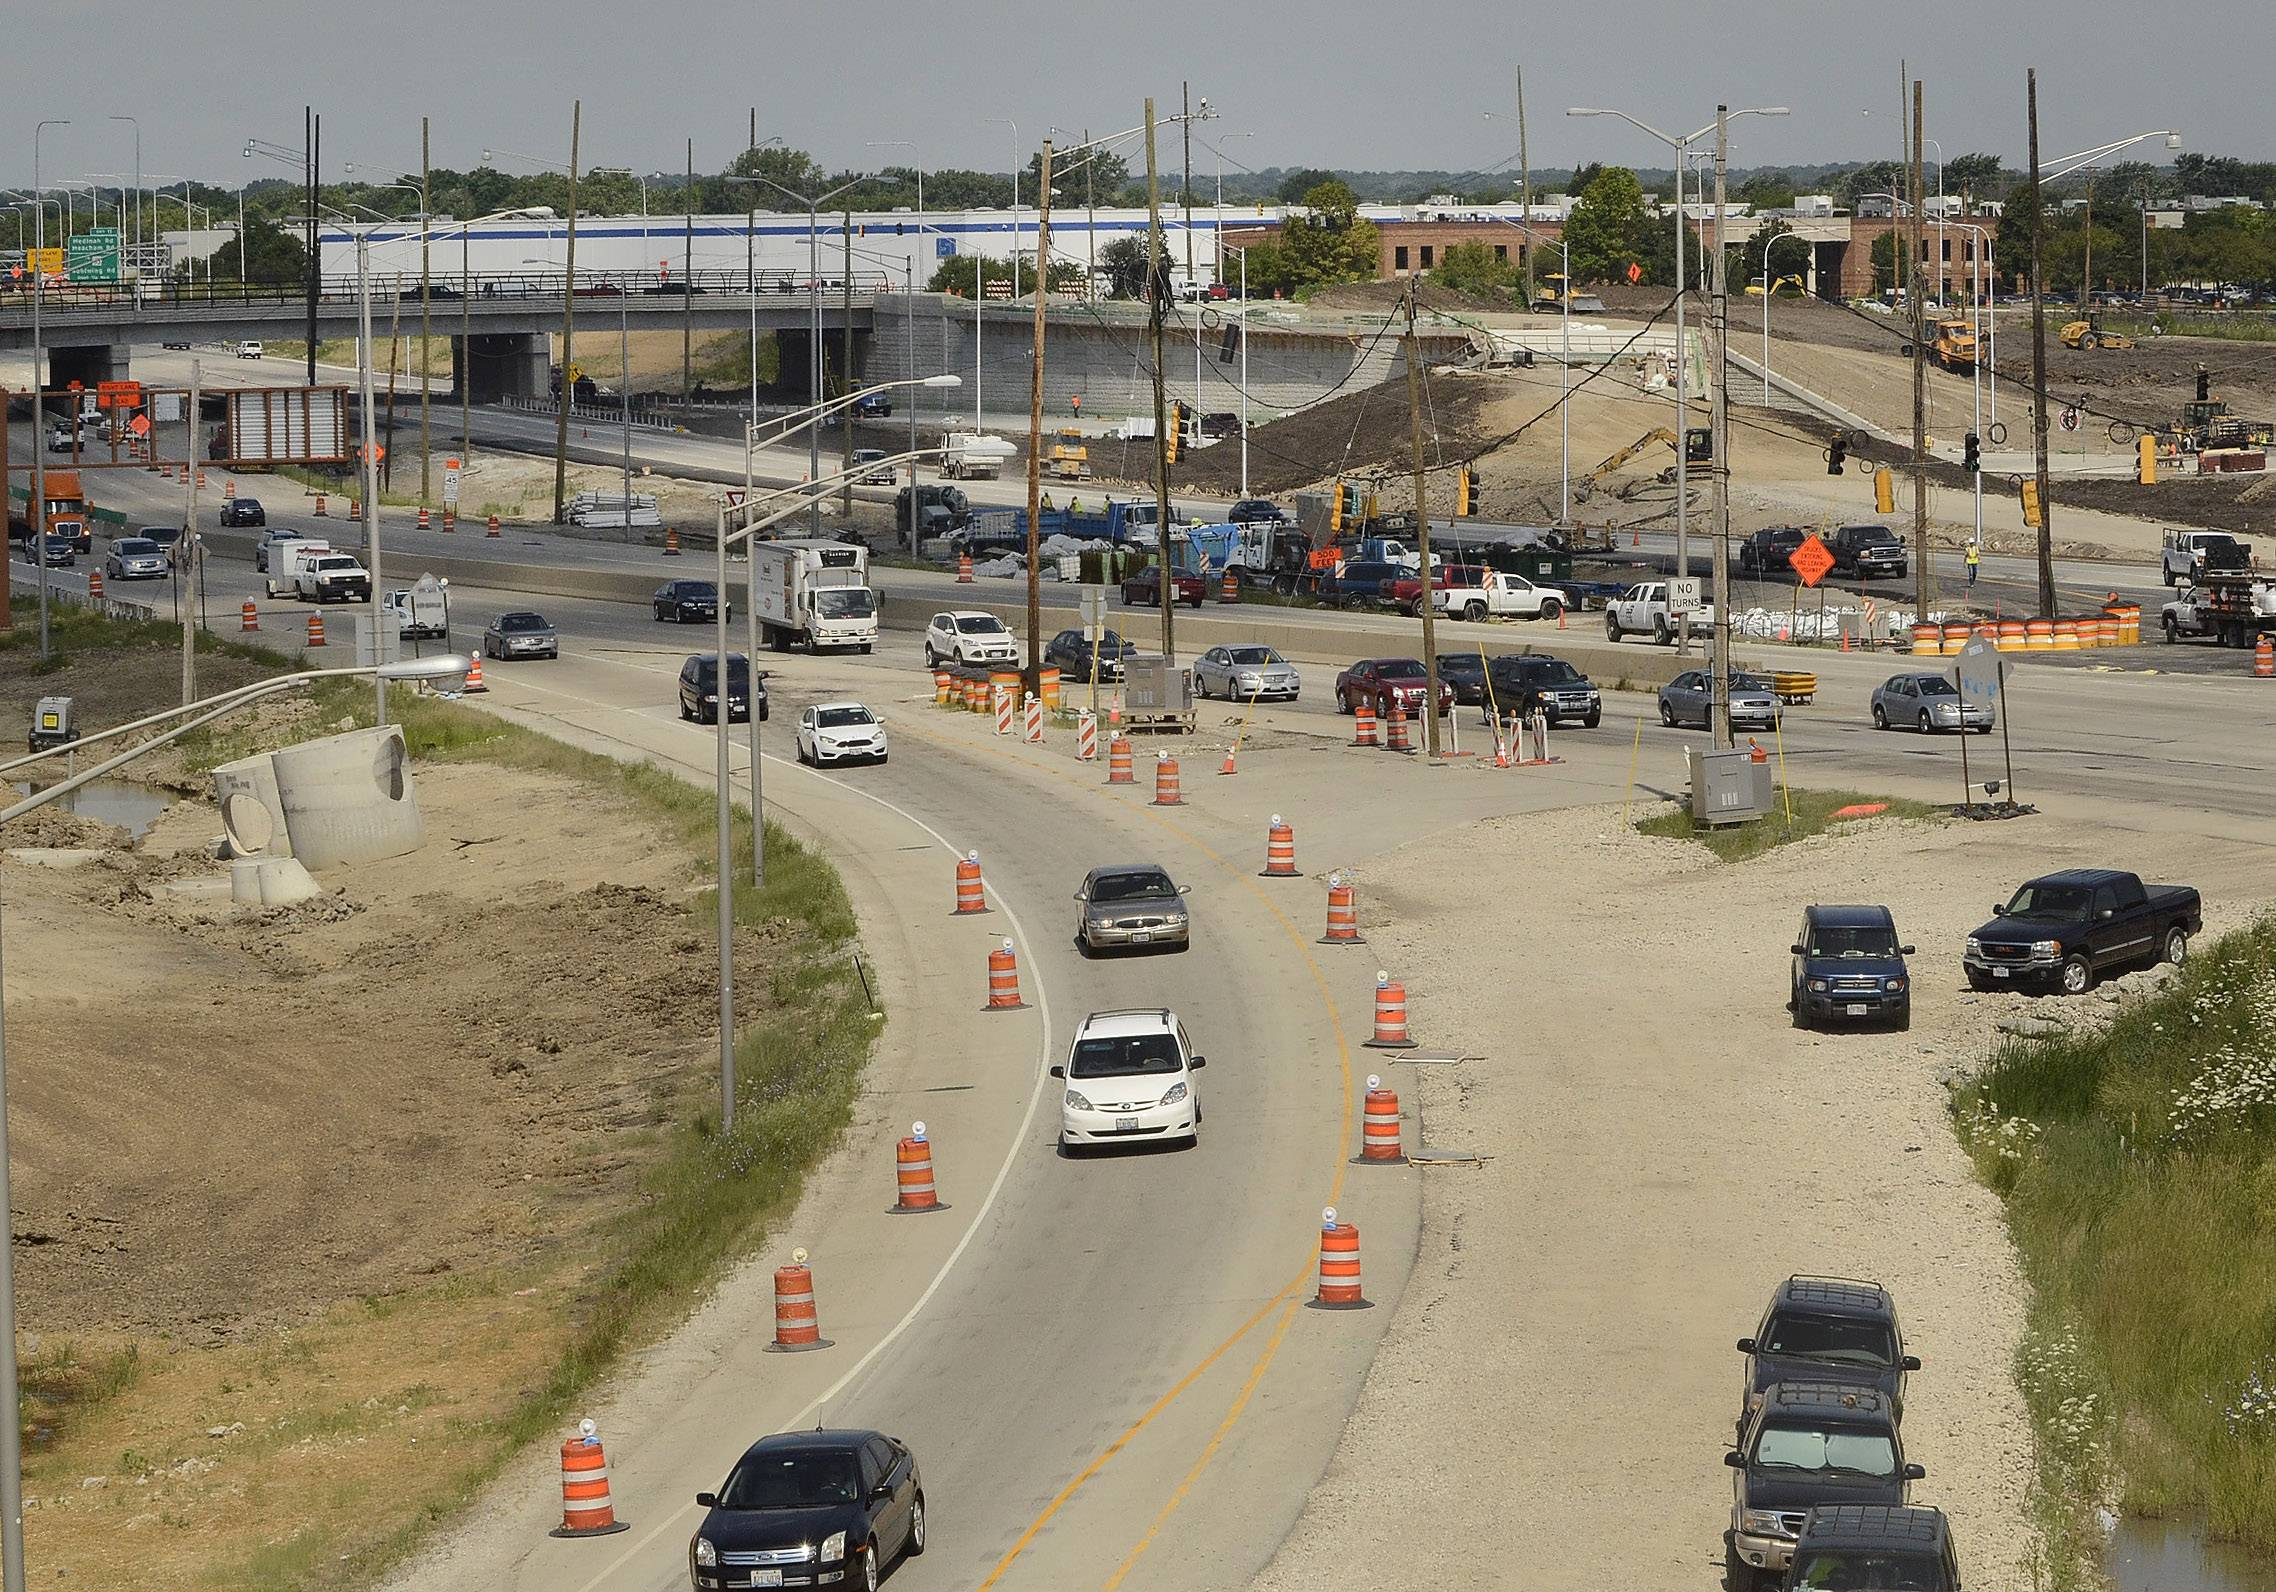 Expect some changes on I-290 leading to Route 390 and on the Reagan Memorial and Jane Addams tollways as summer construction continues into fall.